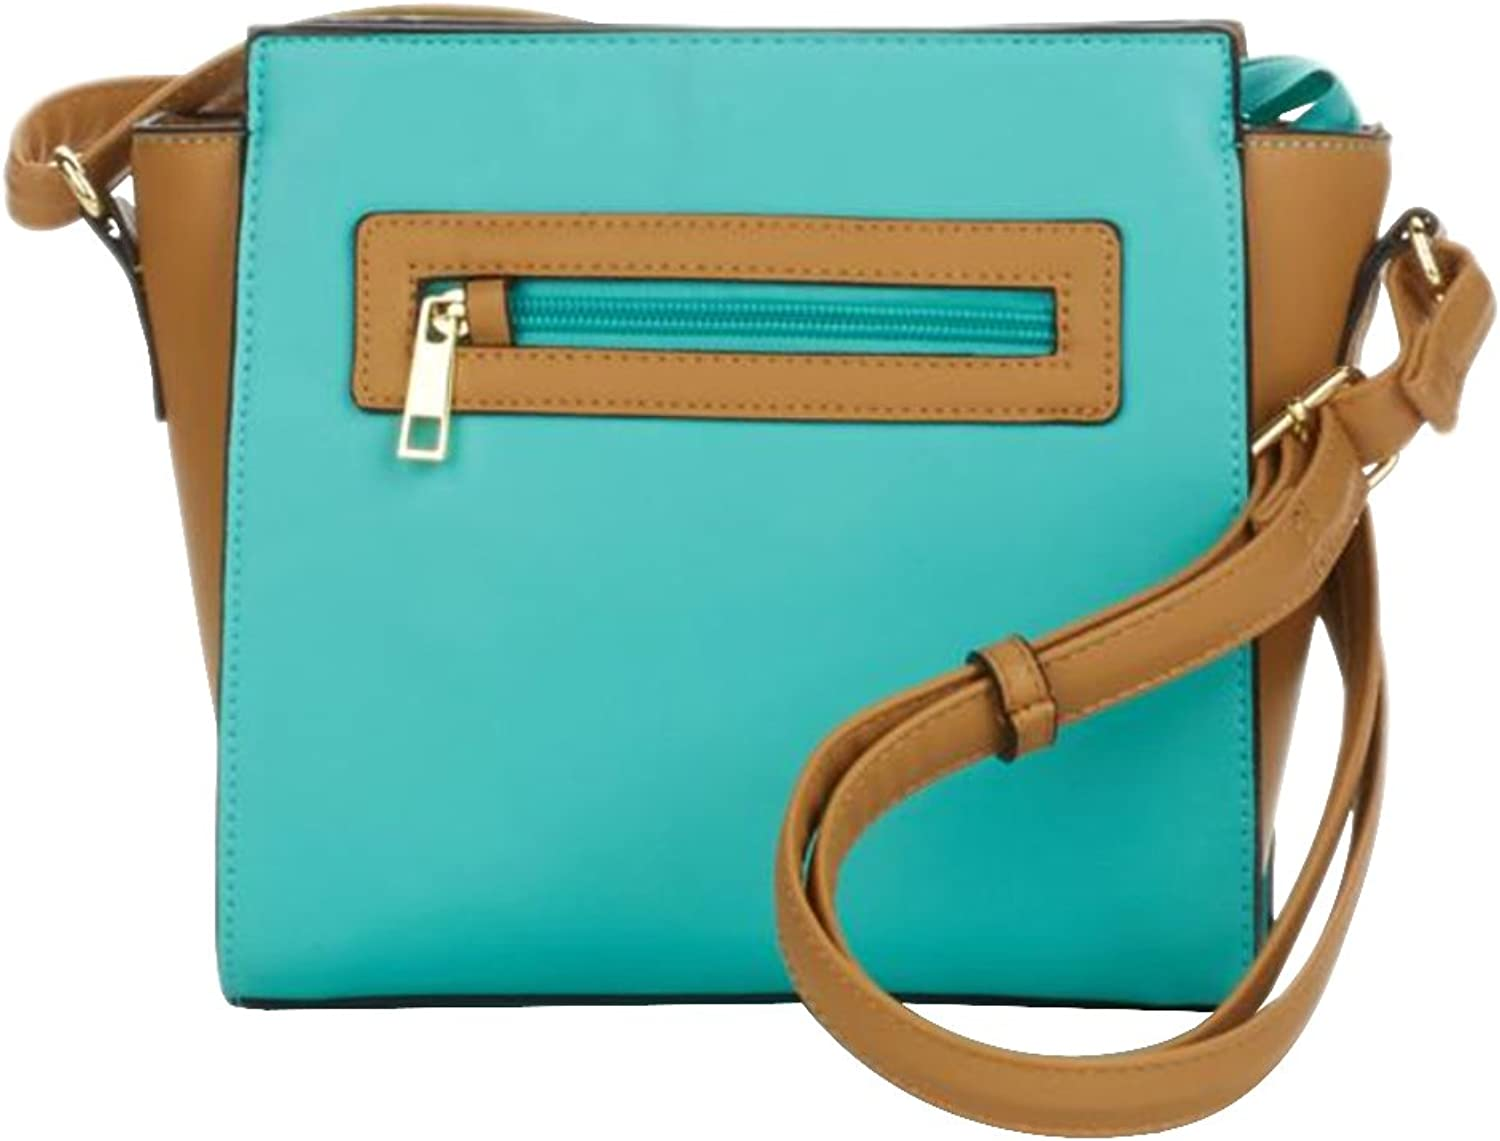 TravelSmith RFID Crossbody Bag with AntiTheft Pacsafe Features  Turquoise   Camel